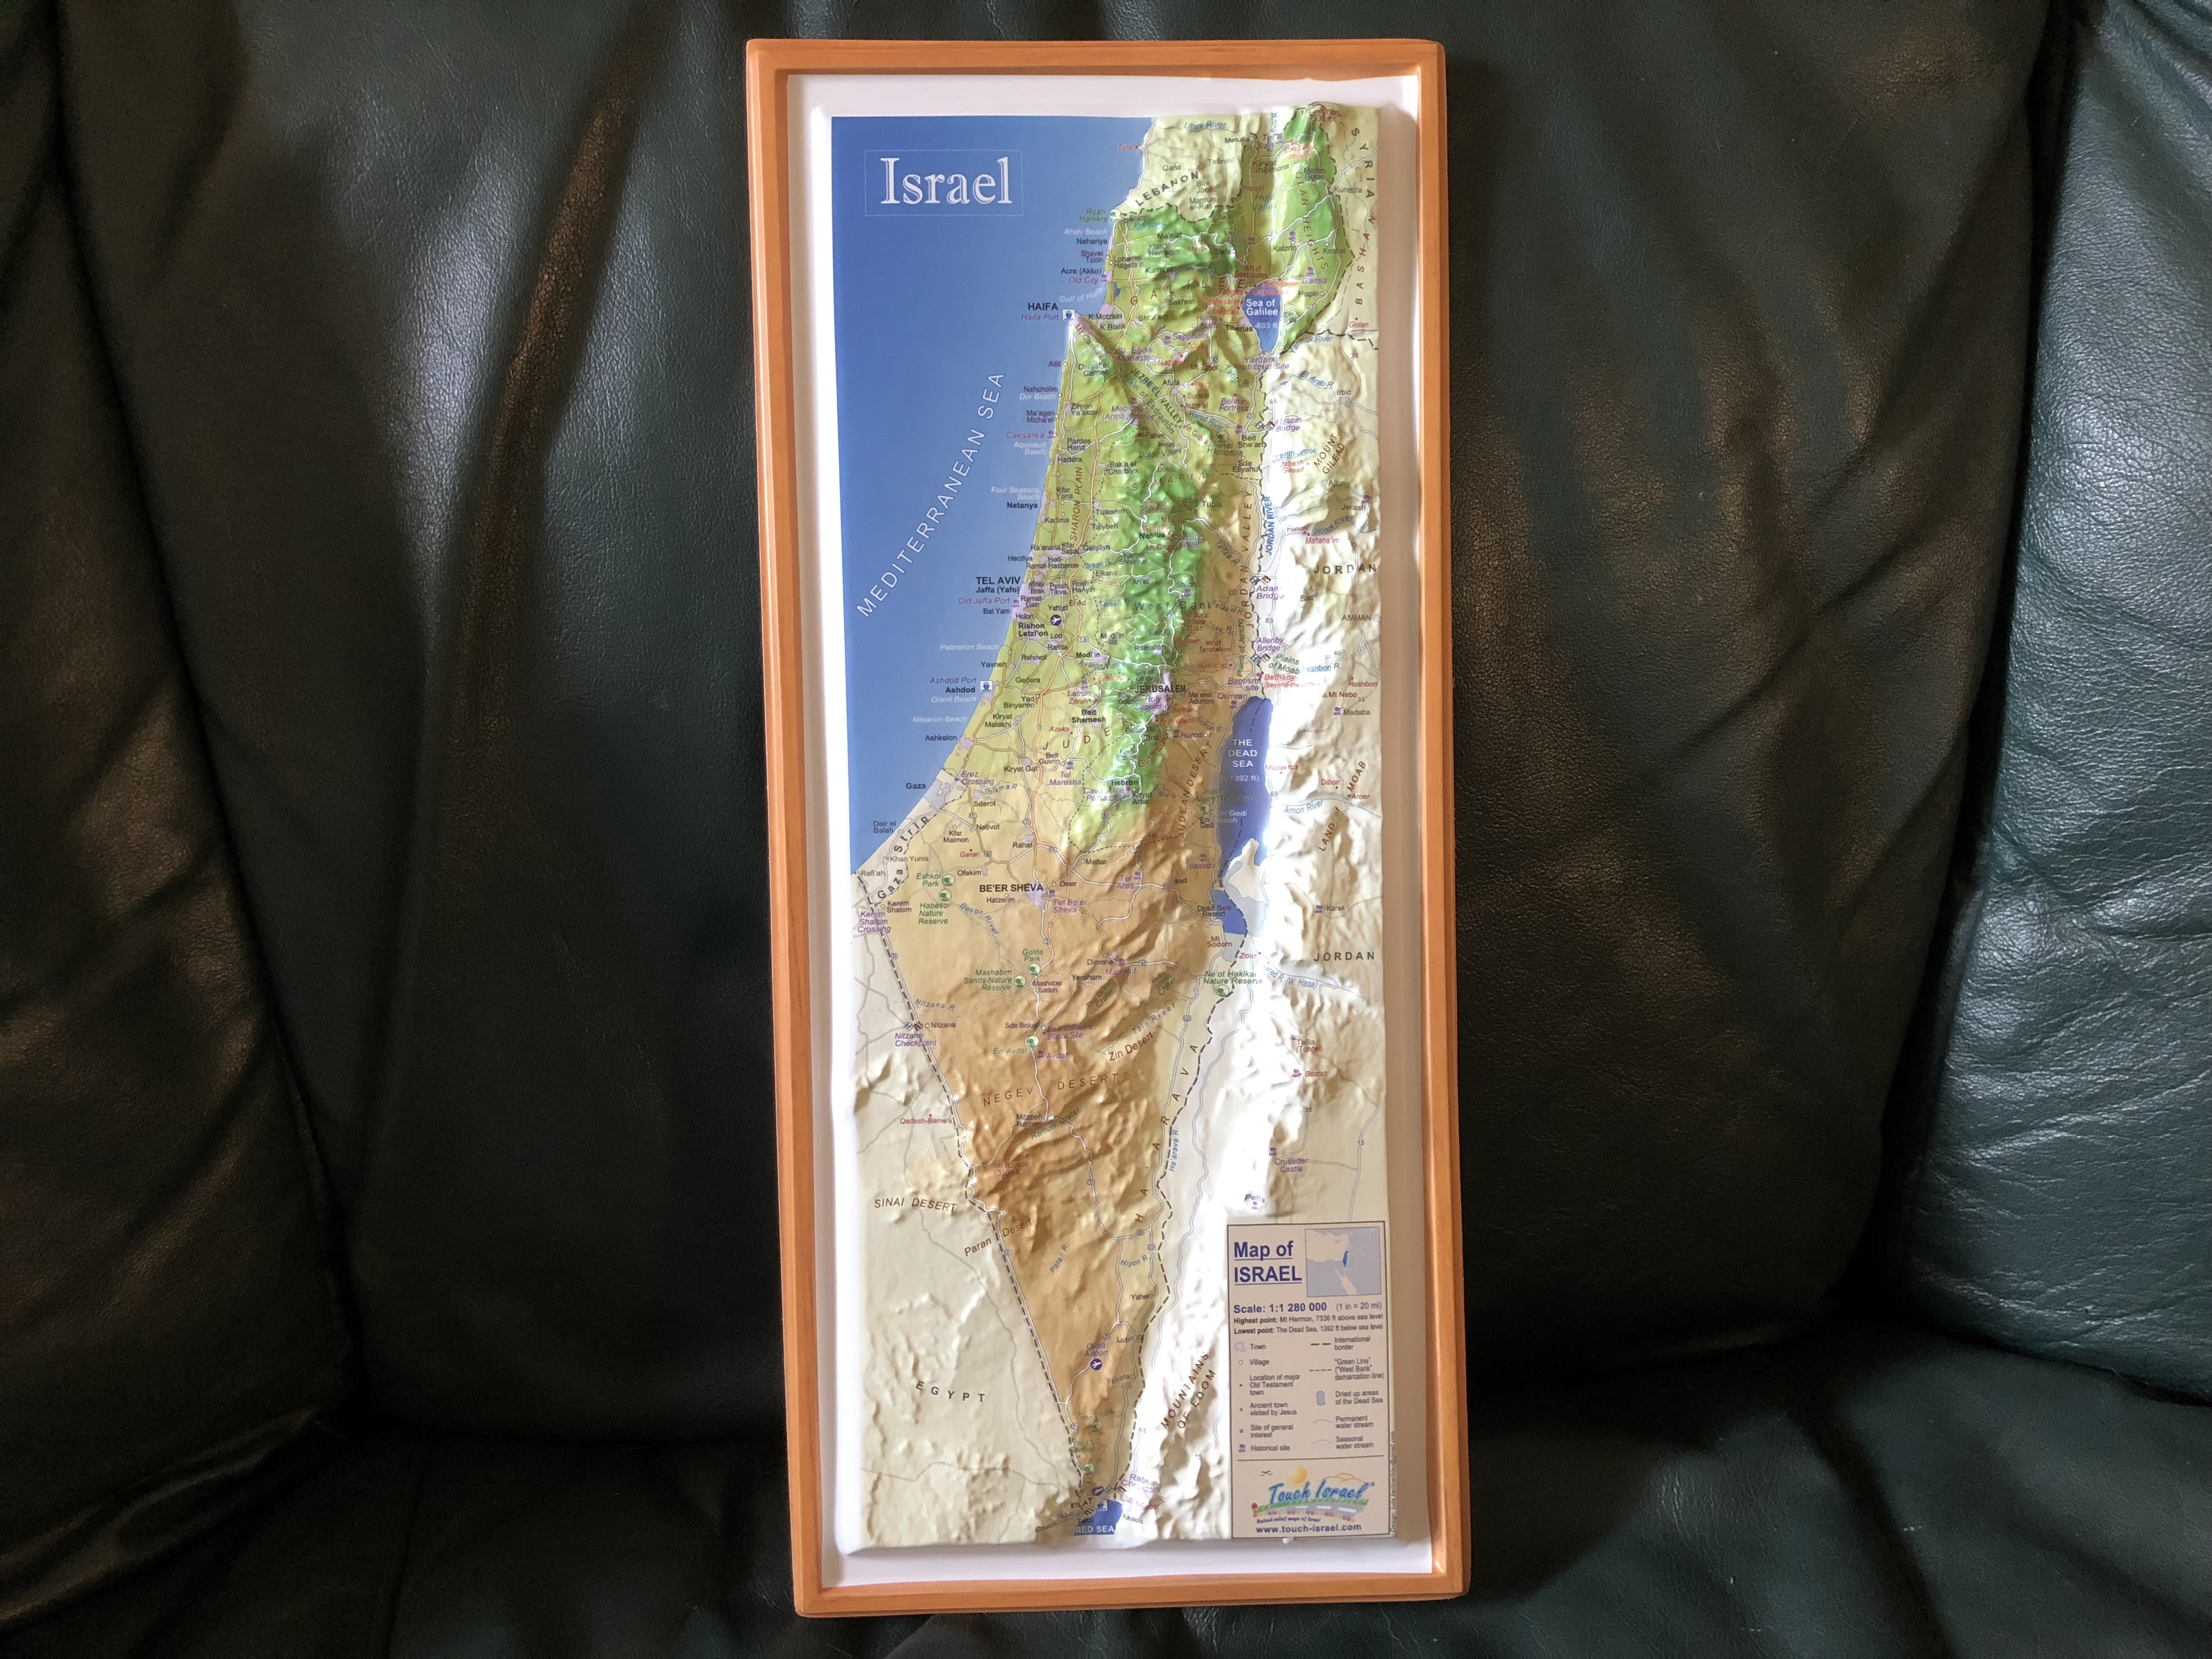 Small Raised Topography Map on